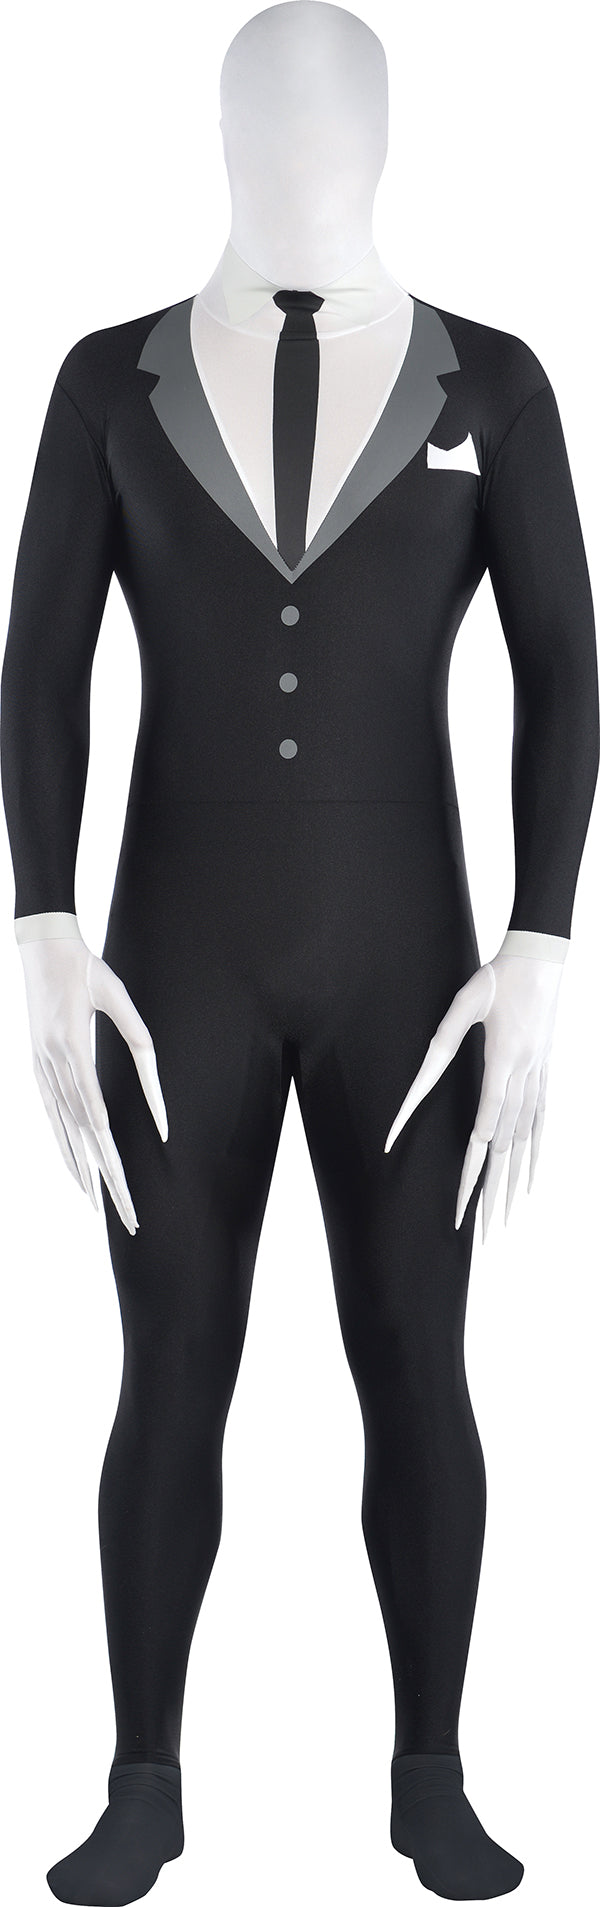 Amscan Adult Slender-Man Party-suit Costume - Medium (Fits up to 5'4), Black